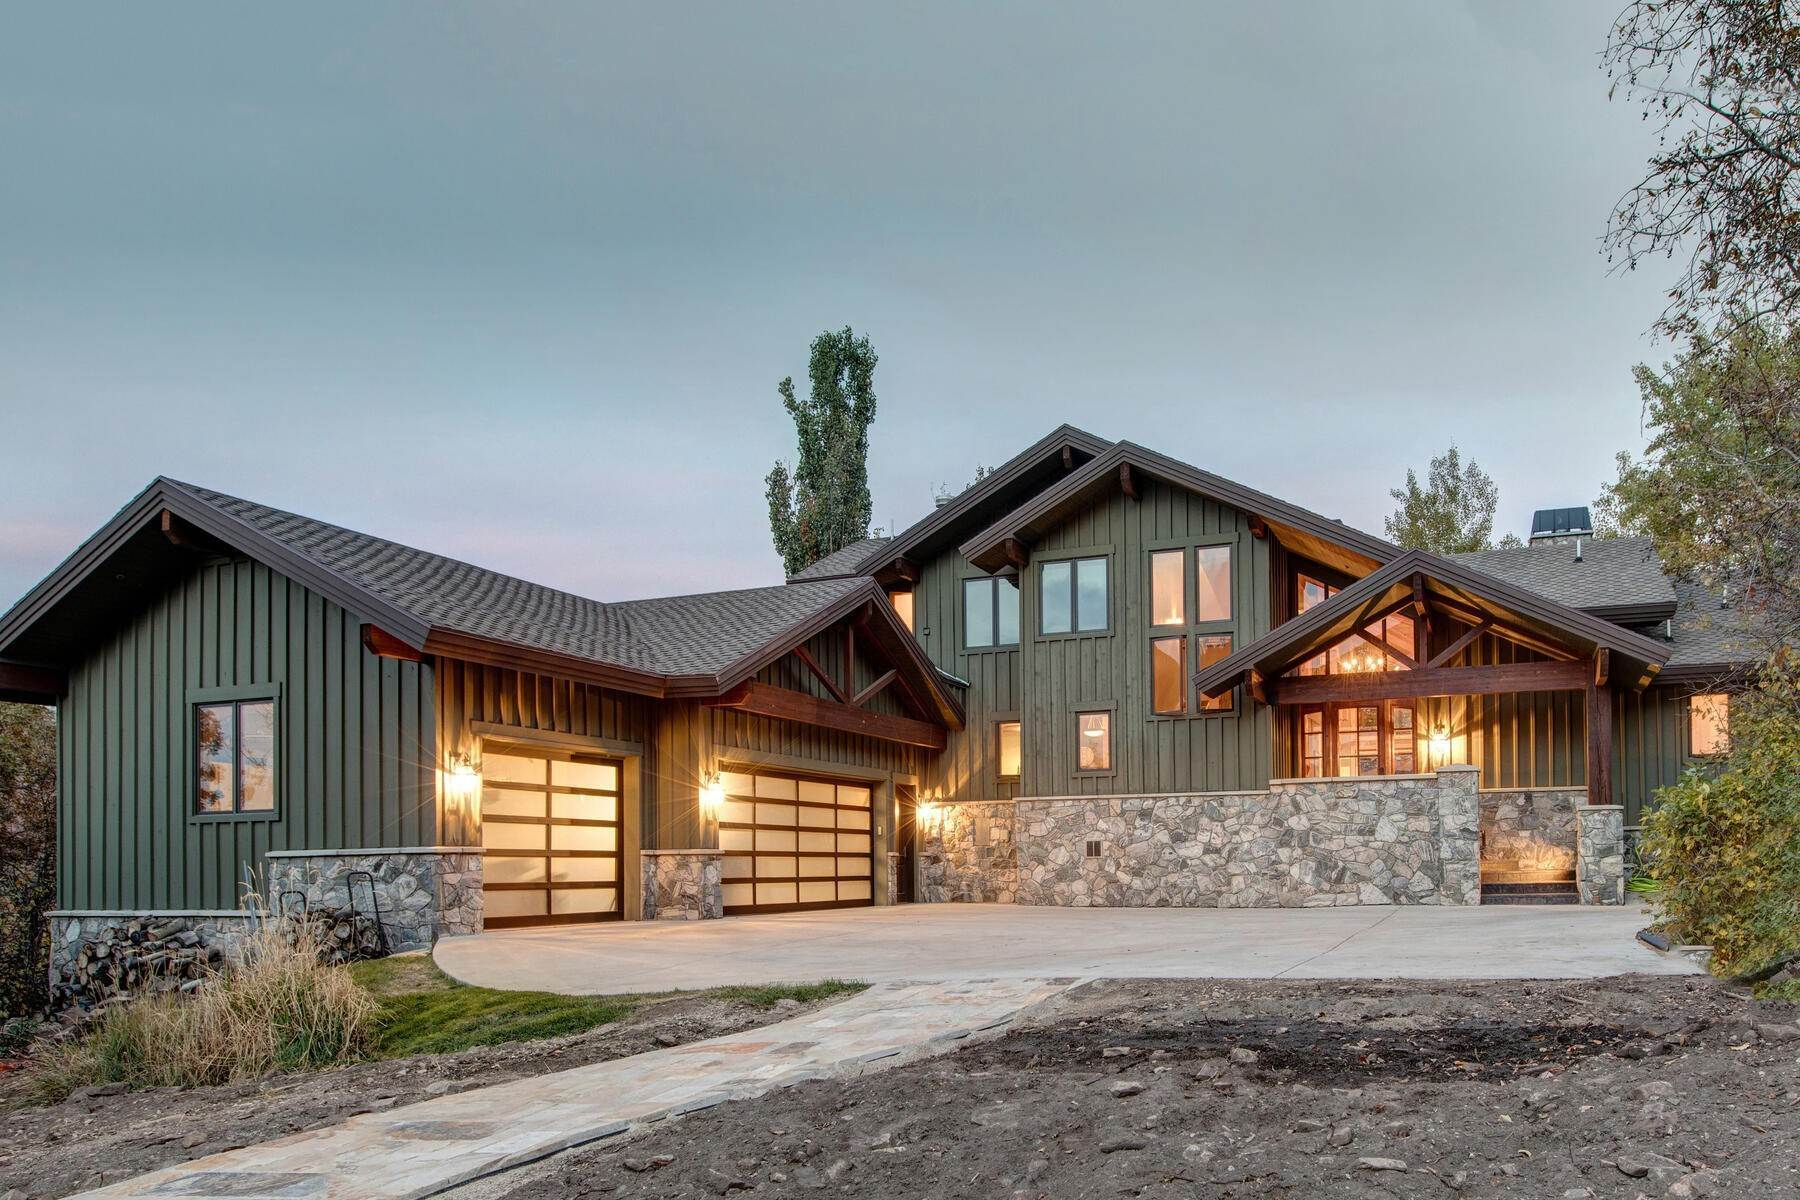 Single Family Homes for Sale at Your Private Oasis in the Heart of Park City 2692 Ruminant Road Park City, Utah 84060 United States